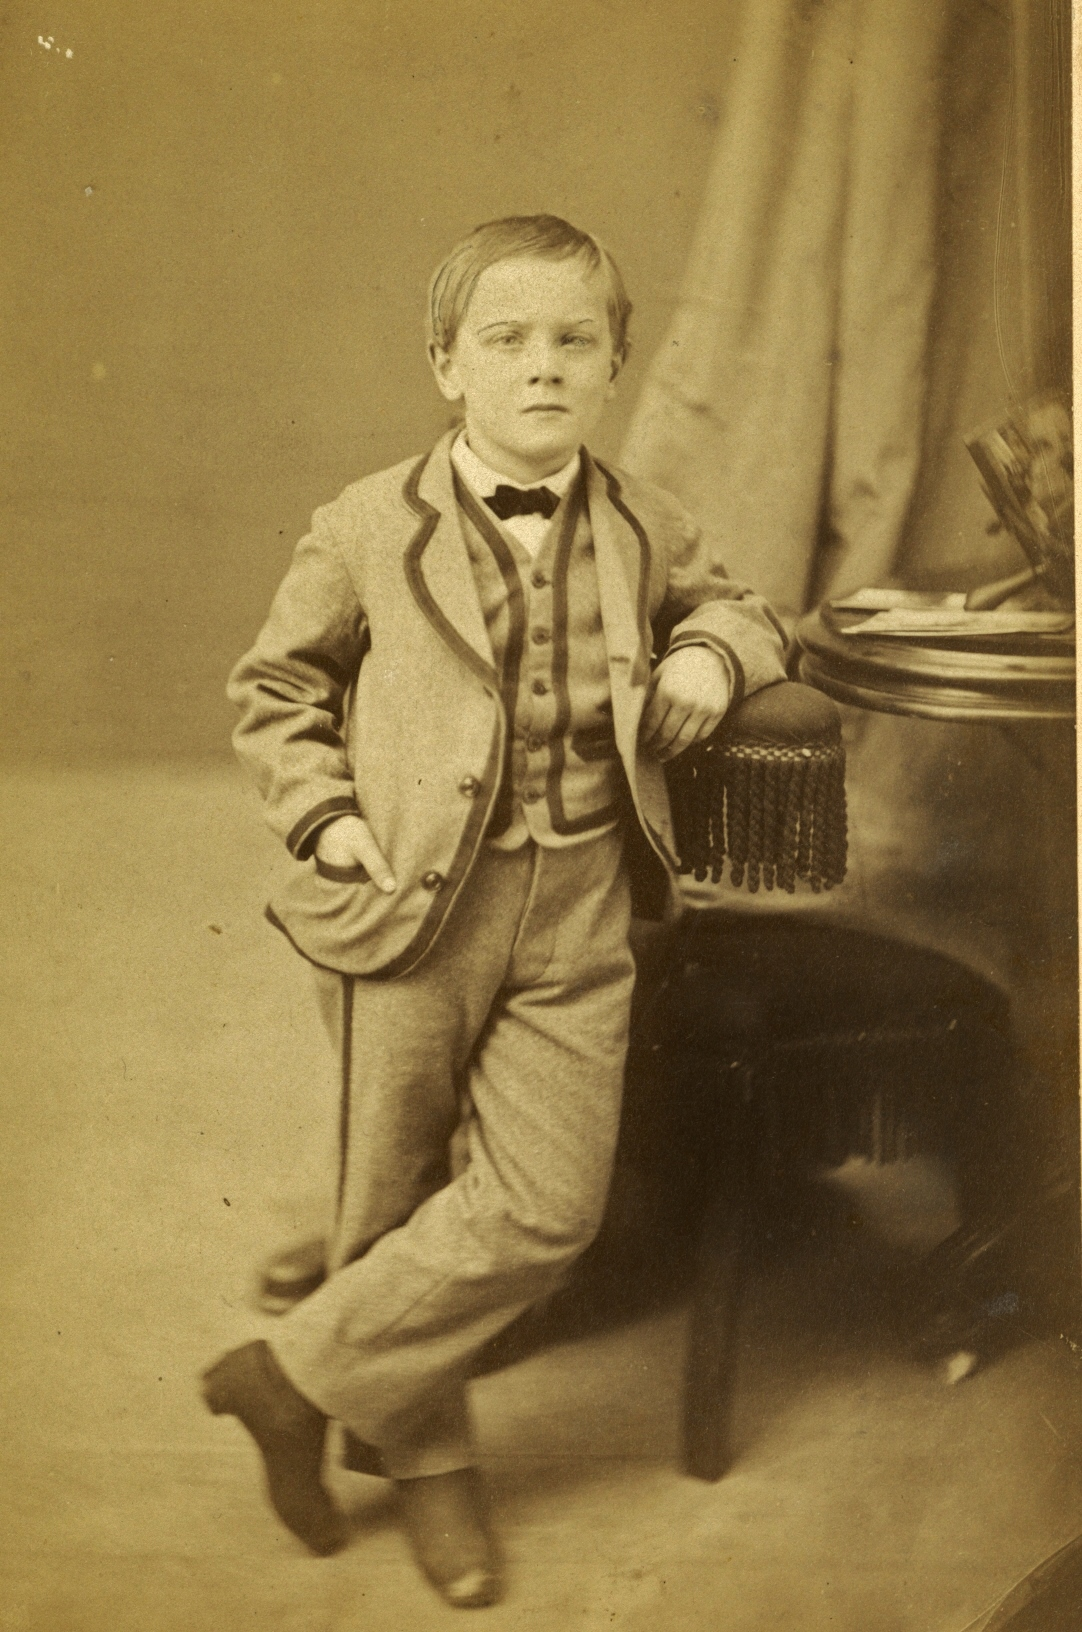 Style of Little Boys Suits, advertisement by F.N. Marett's